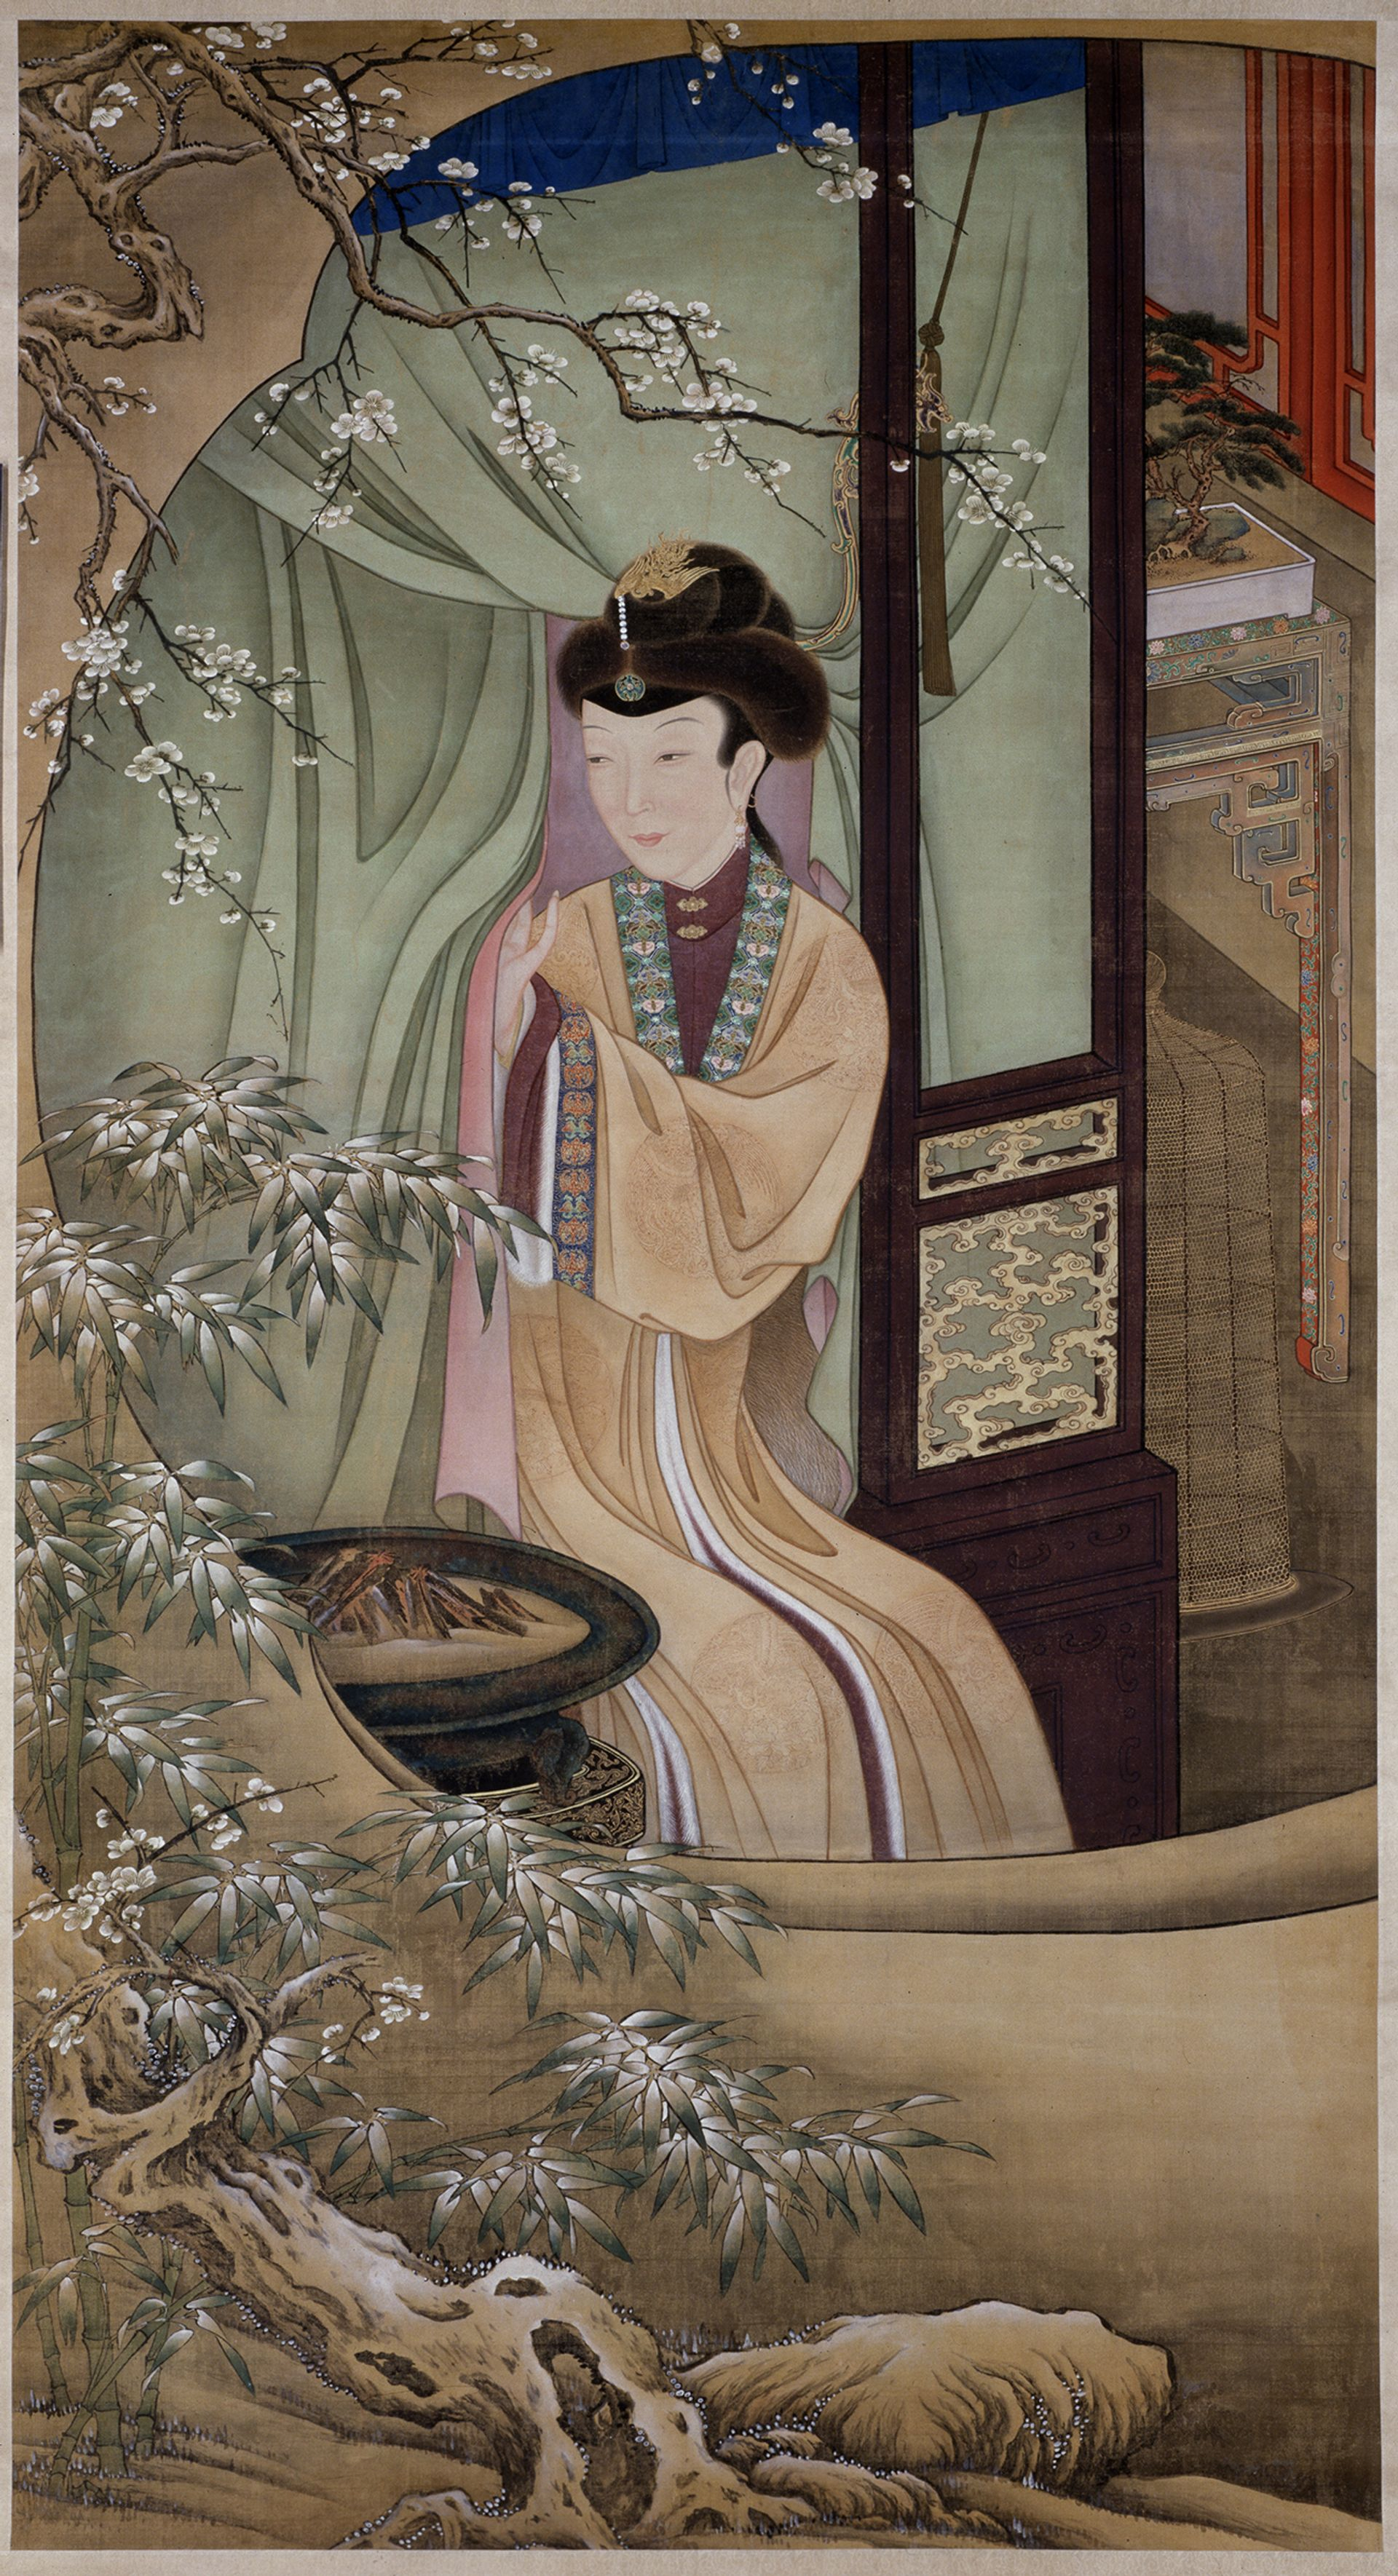 A hanging scroll by 17th- or 18th-century court painters in Beijing © The Palace Museum